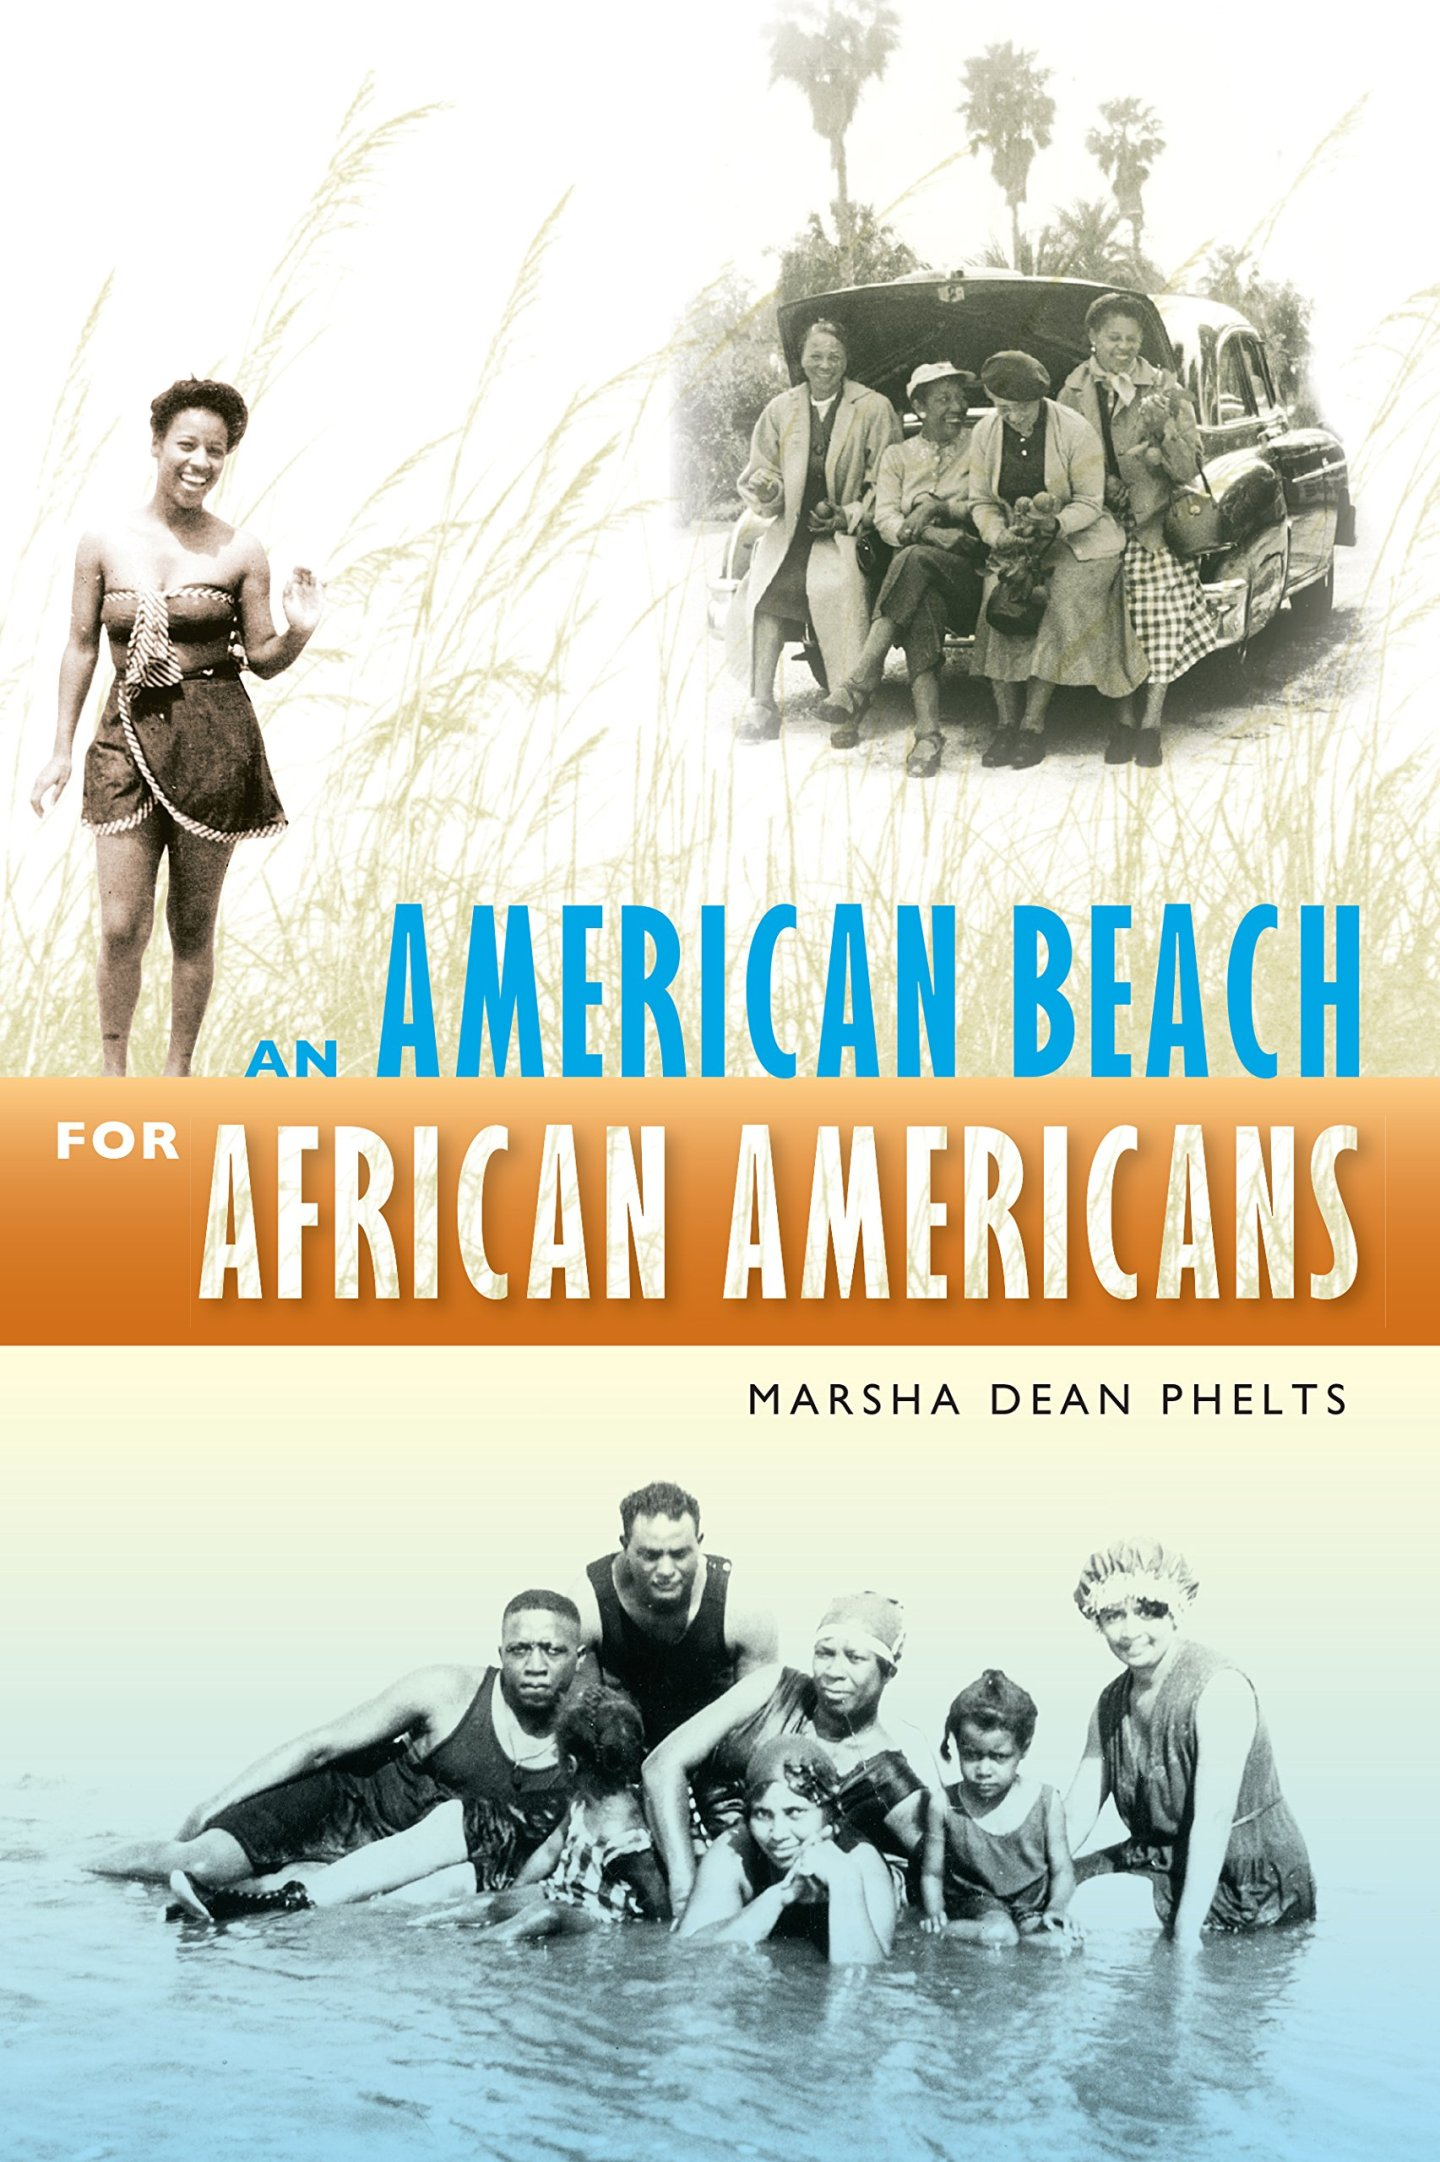 Black Beach Heritage Books: American Beach, Florida - A group of people wearing costumes - Russ Rymer